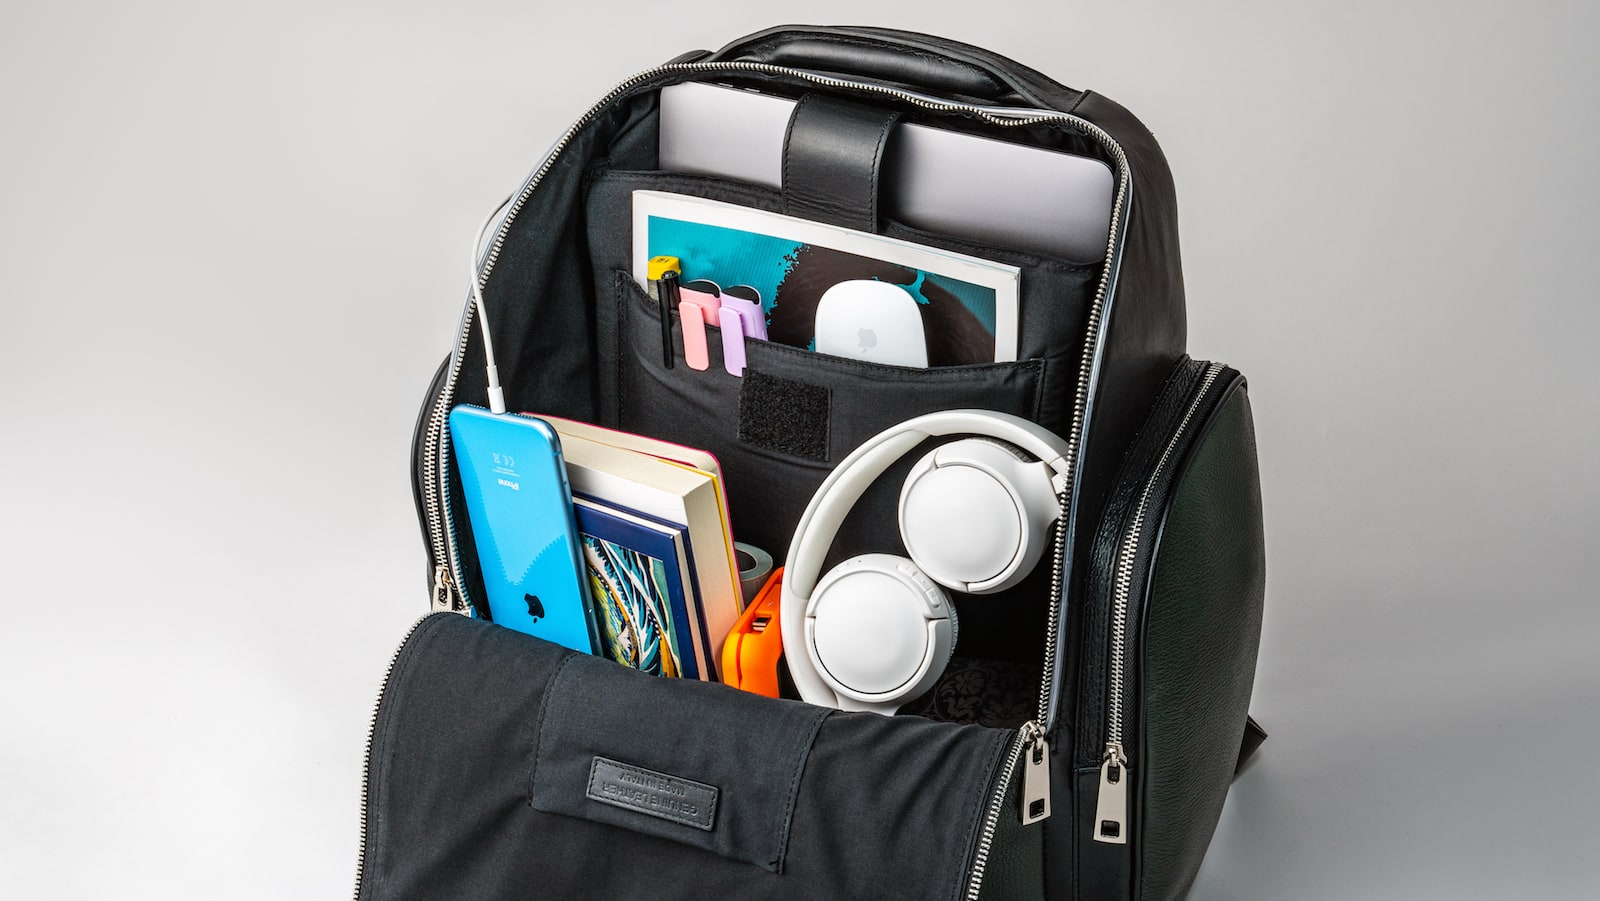 This high-tech backpack has anti-assault security, GPS tracking, and a power bank